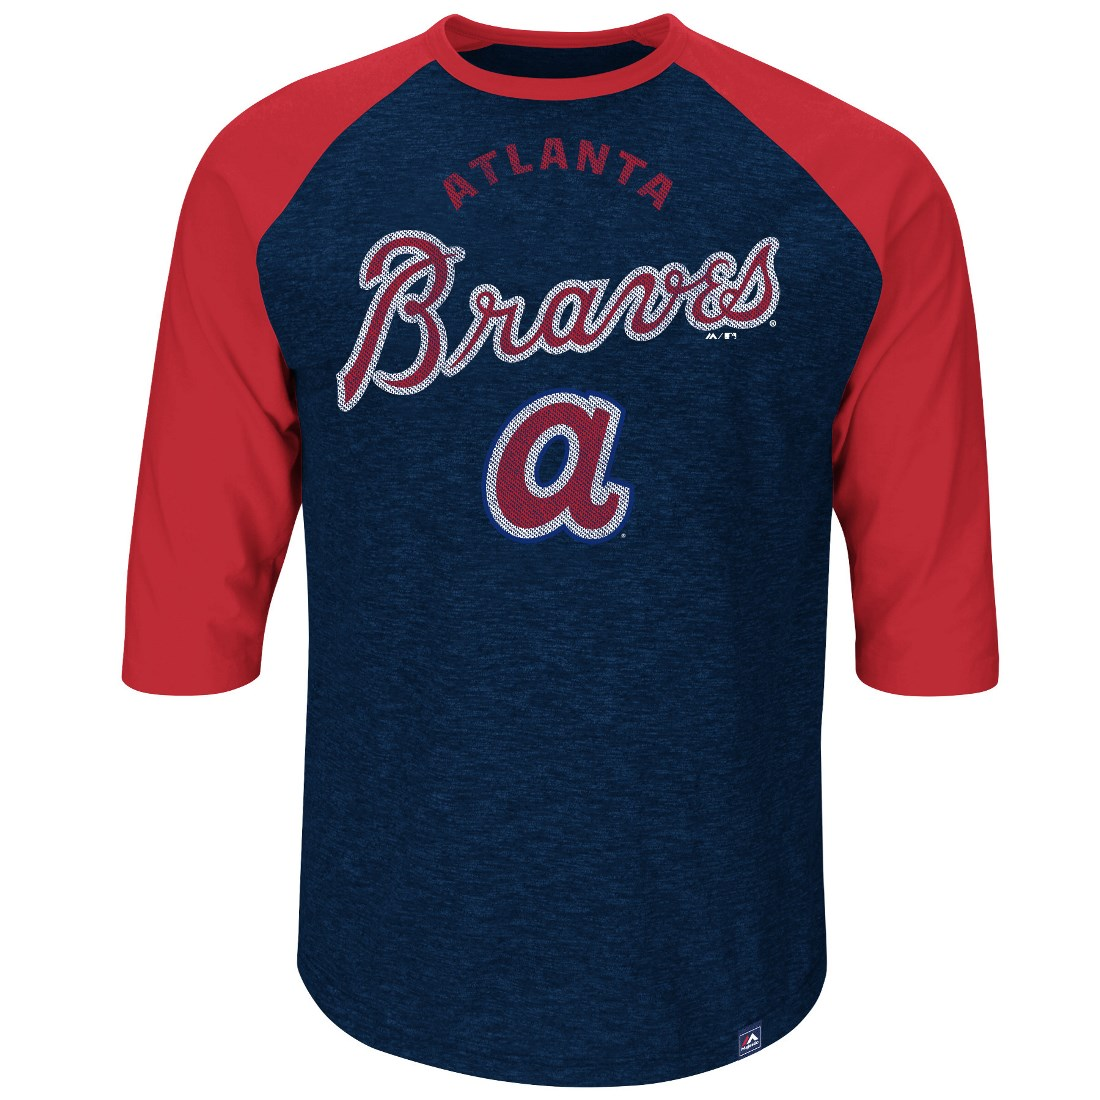 "Atlanta Braves Majestic MLB ""Don't Judge"" Cooperstown 3/4 Sleeve Slub Shirt"